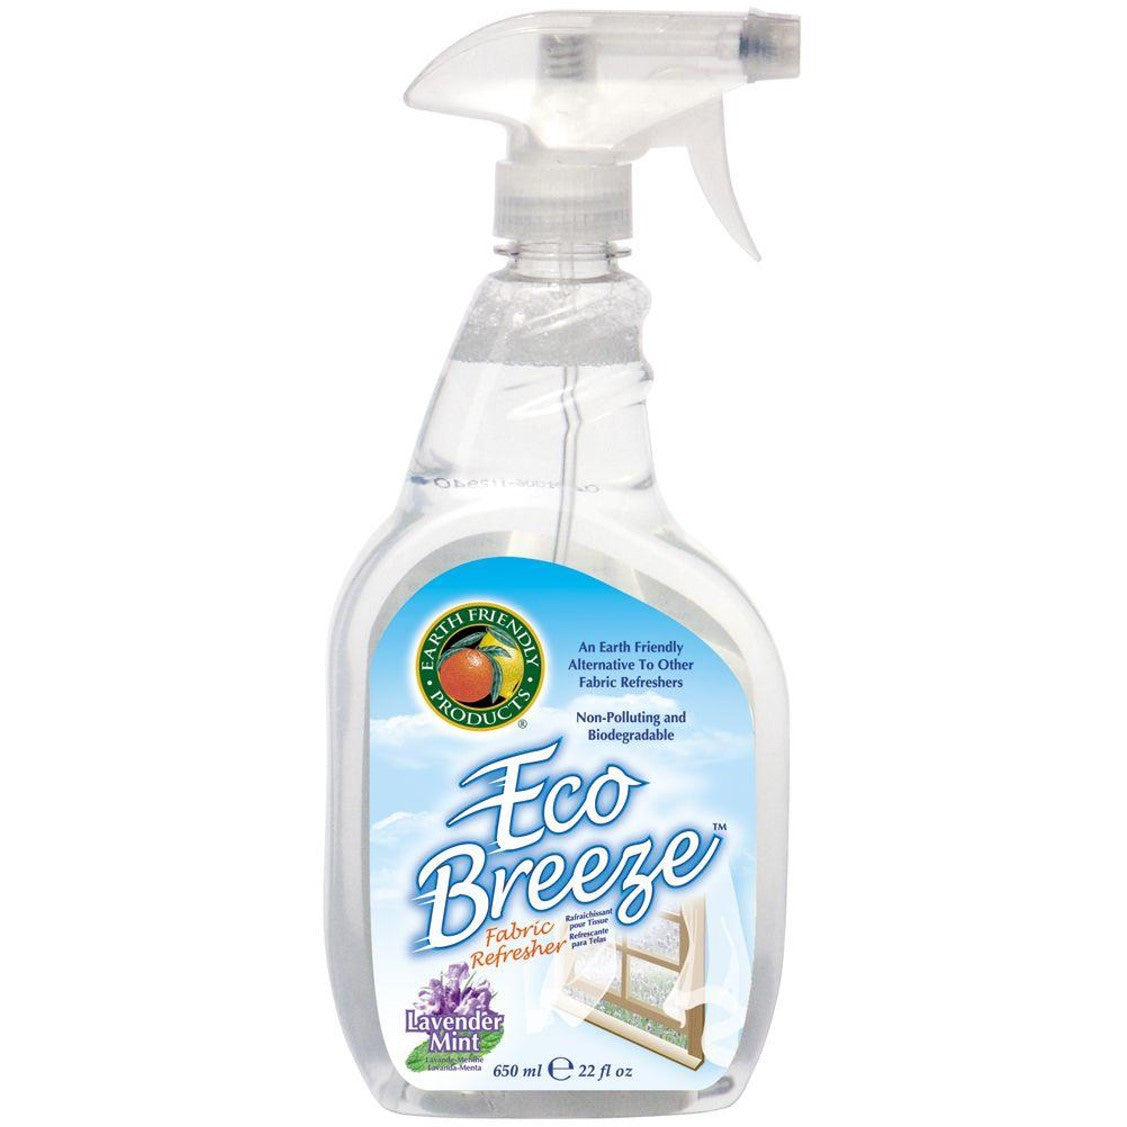 Earth Friendly Eco Breeze Fabric Refresher - Lavender Mint, 650 ml.-NaturesWisdom